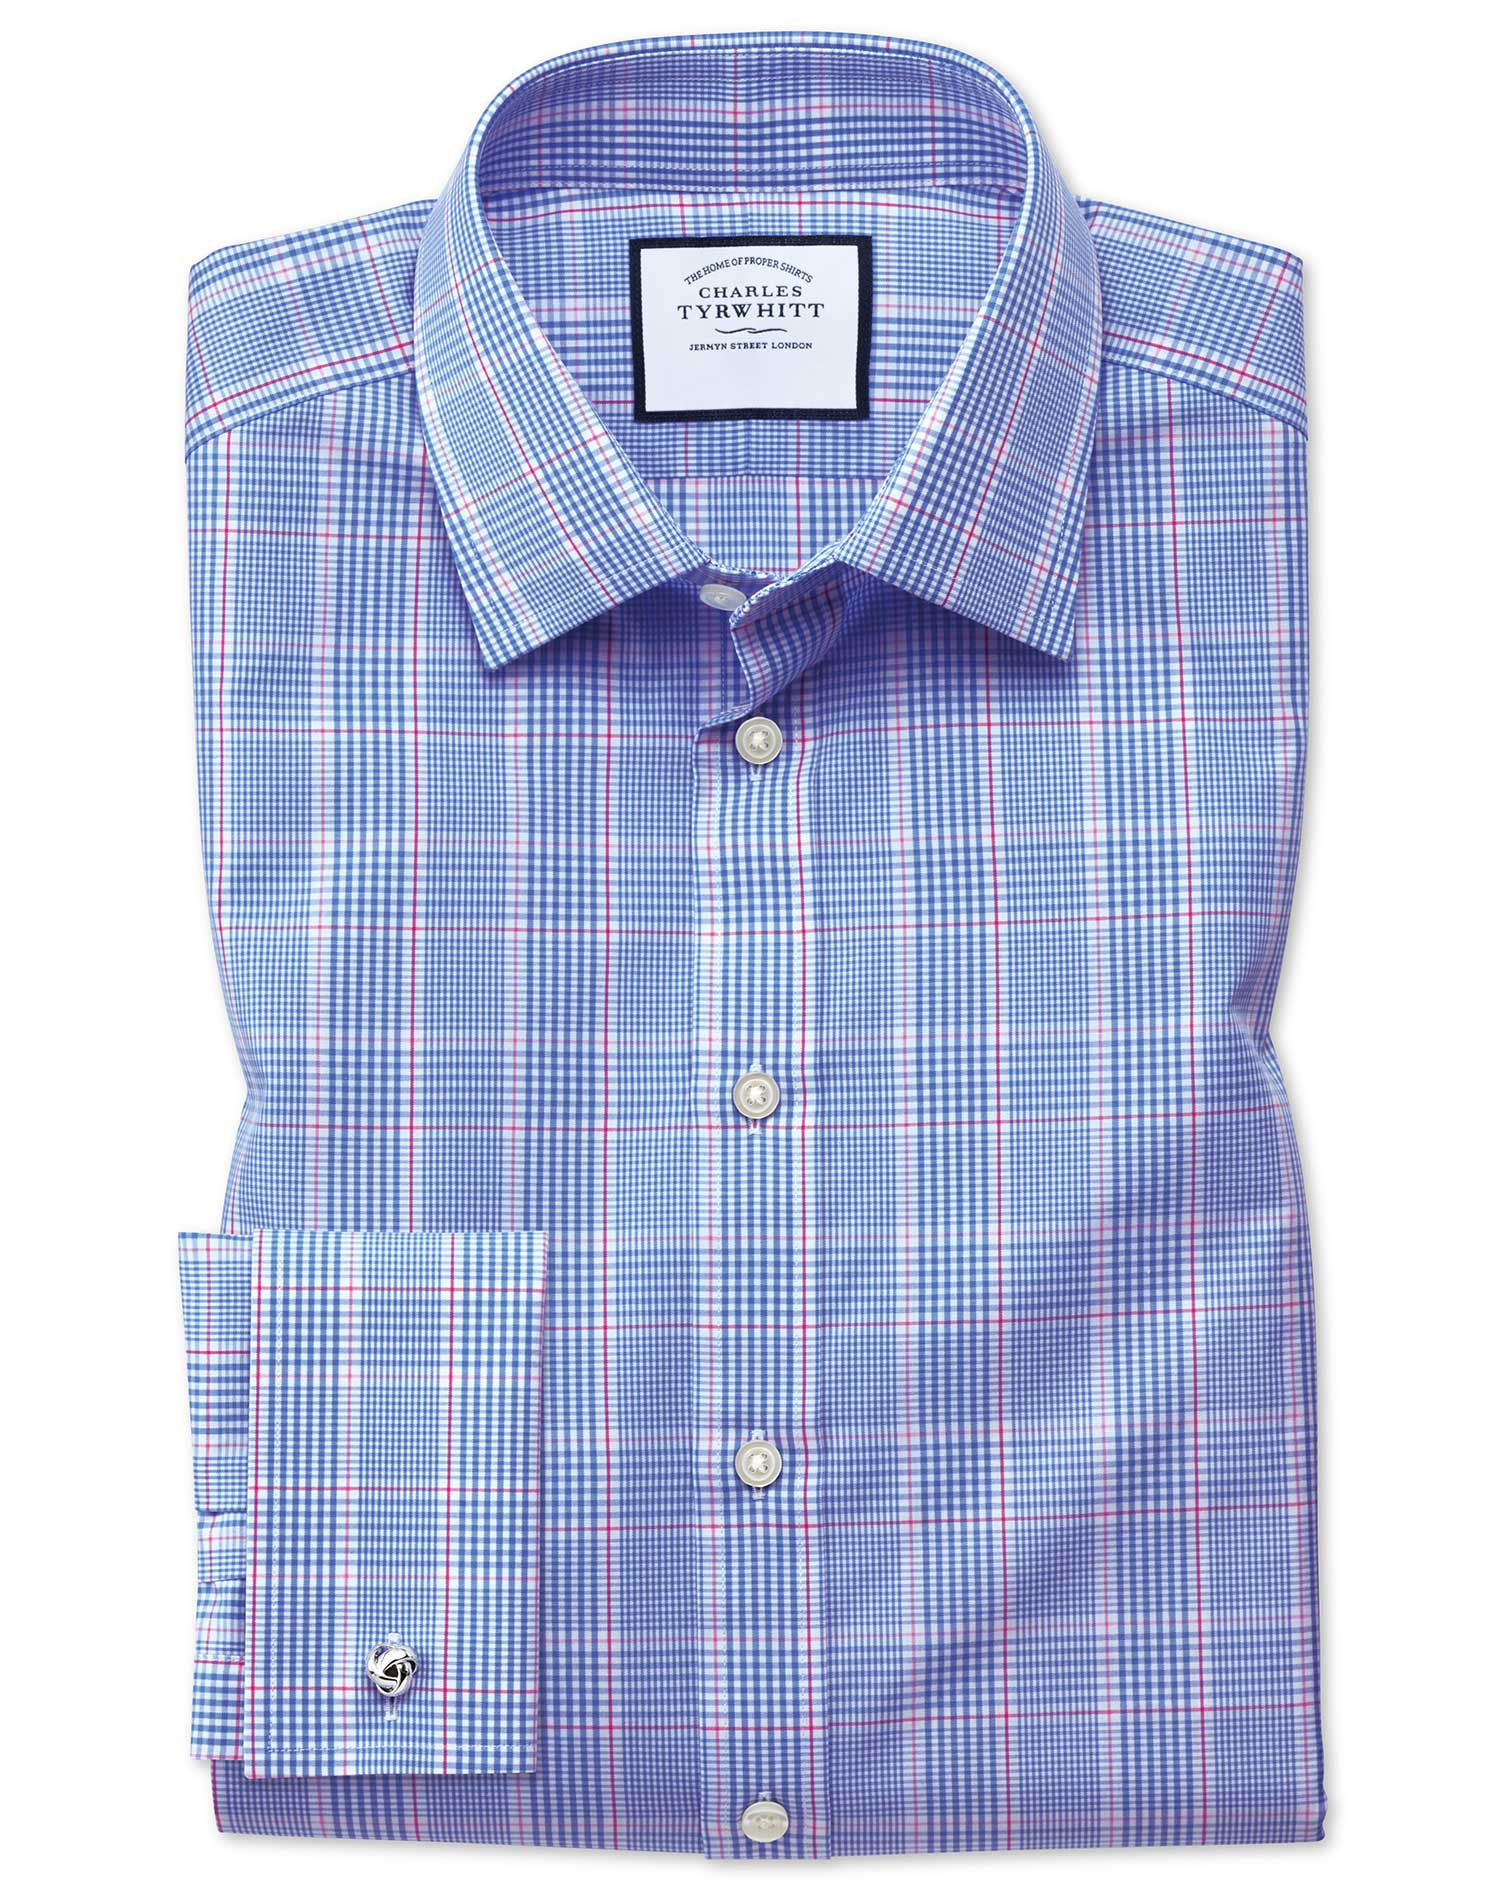 Extra Slim Fit Prince Of Wales Blue Cotton Formal Shirt Single Cuff Size 15.5/32 by Charles Tyrwhitt